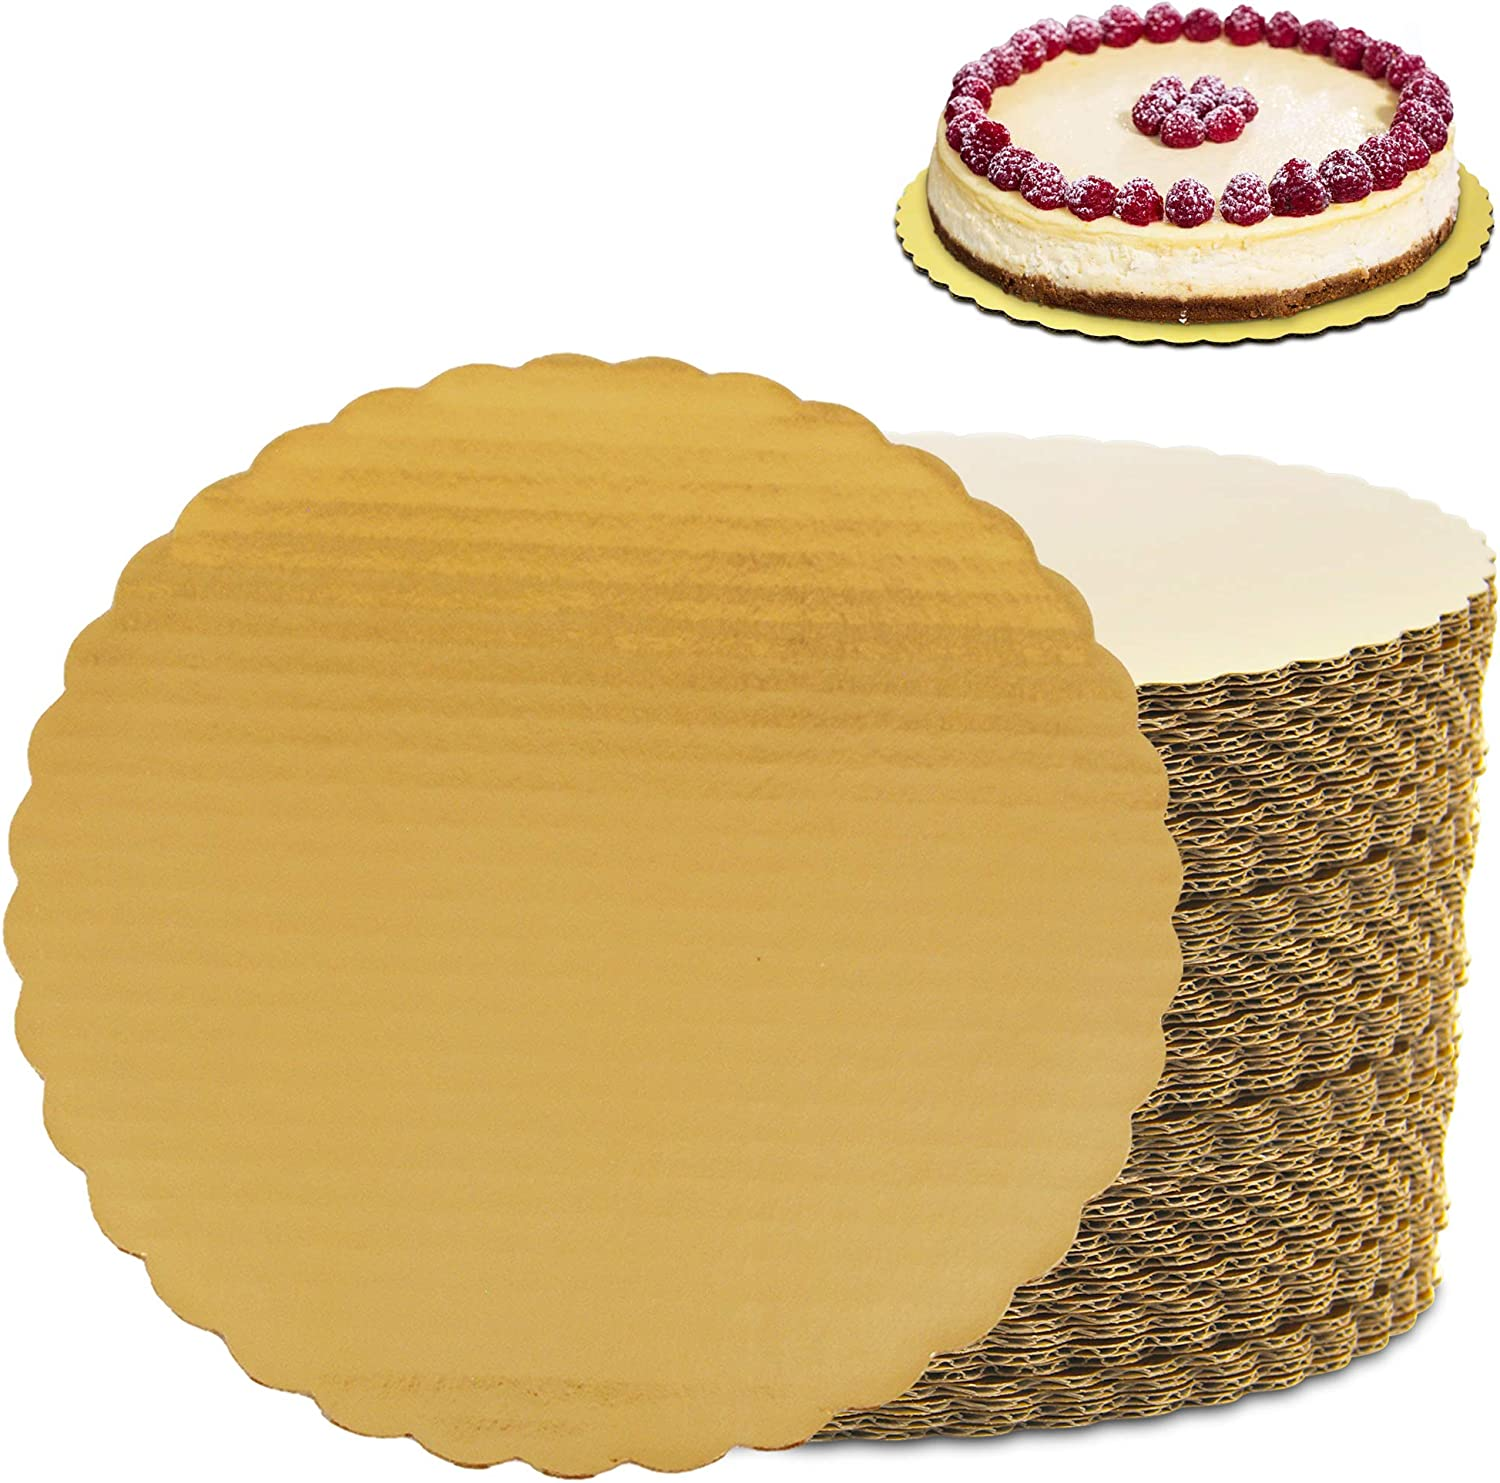 100 Pack 12 Inches Round Sale price Cake Boards Chicago Mall Disposable Ca - Cardboard